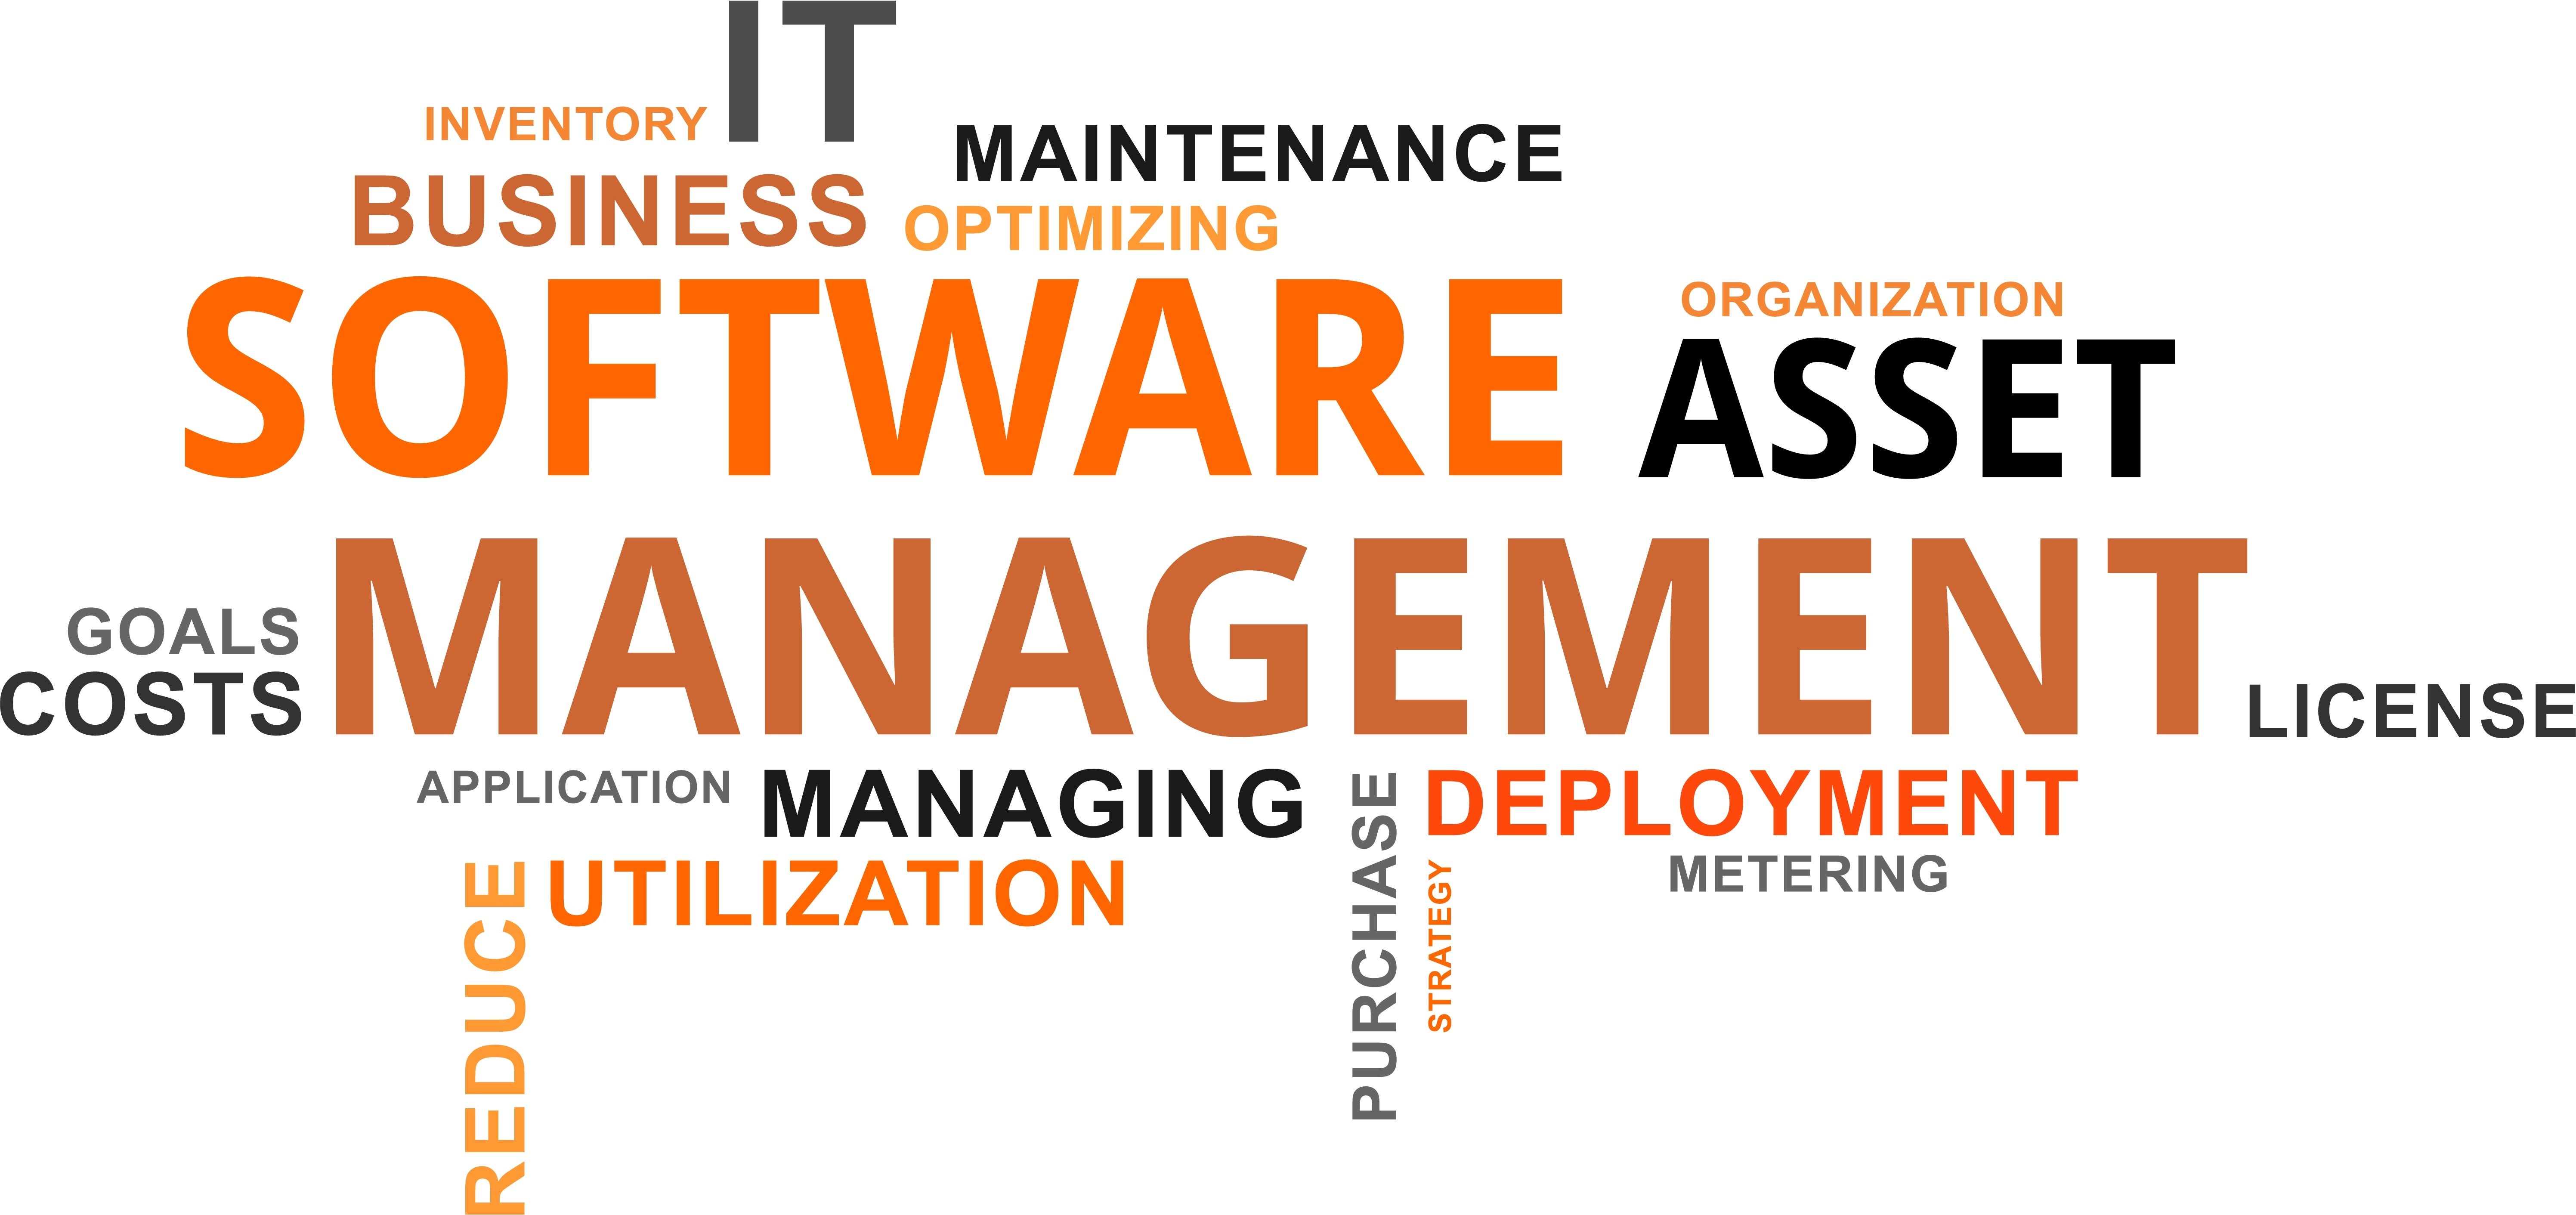 Autopsy of an off-the-shelf software acquisition process: from demand to installation. A nightmare for your IT department?